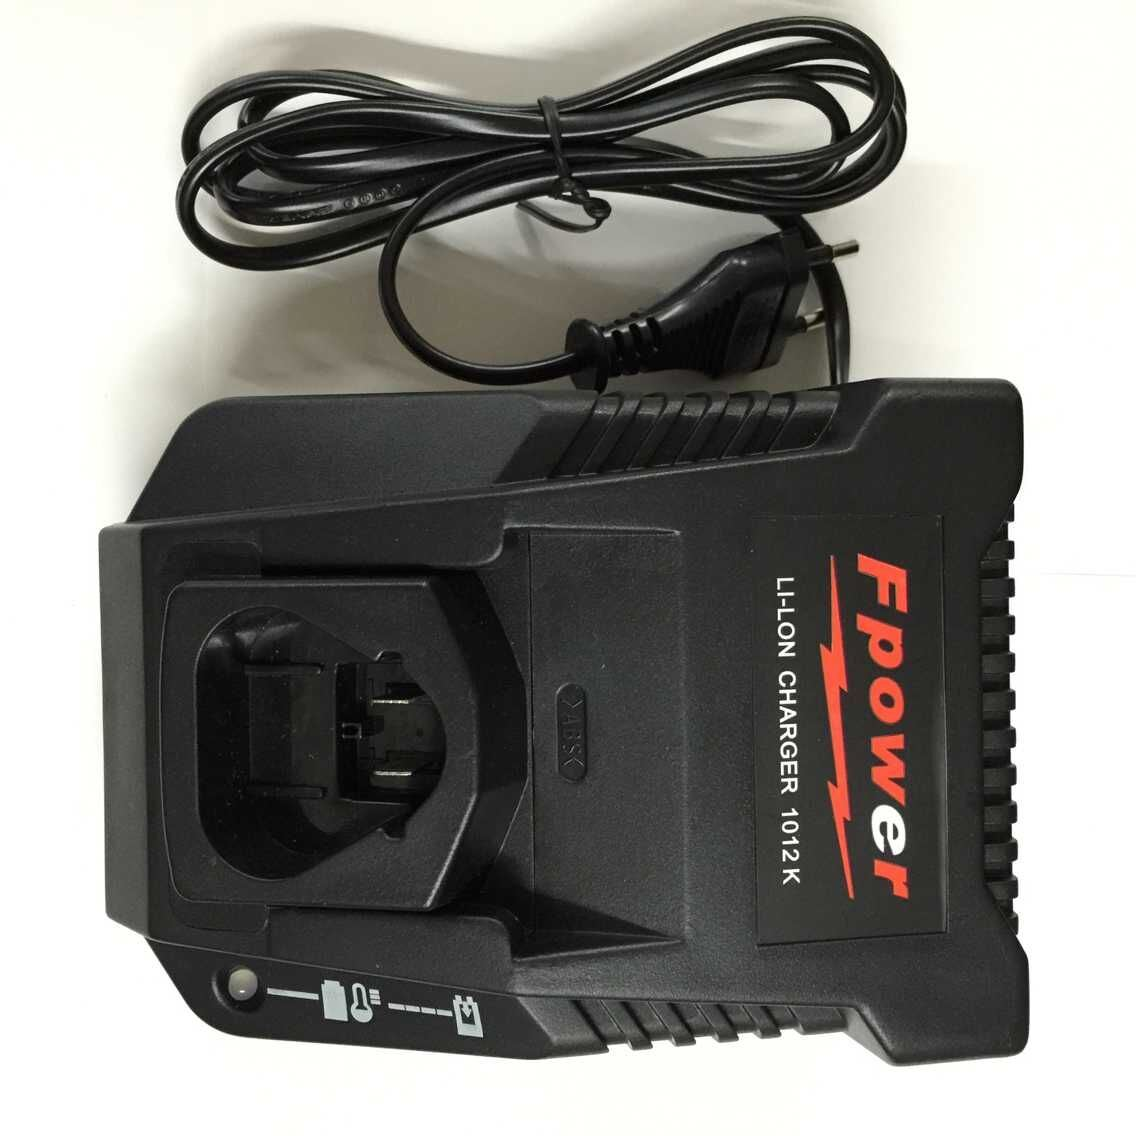 New Charger for Bosch Charger 10.8-18V Li-ion Power Tool Battery Charger